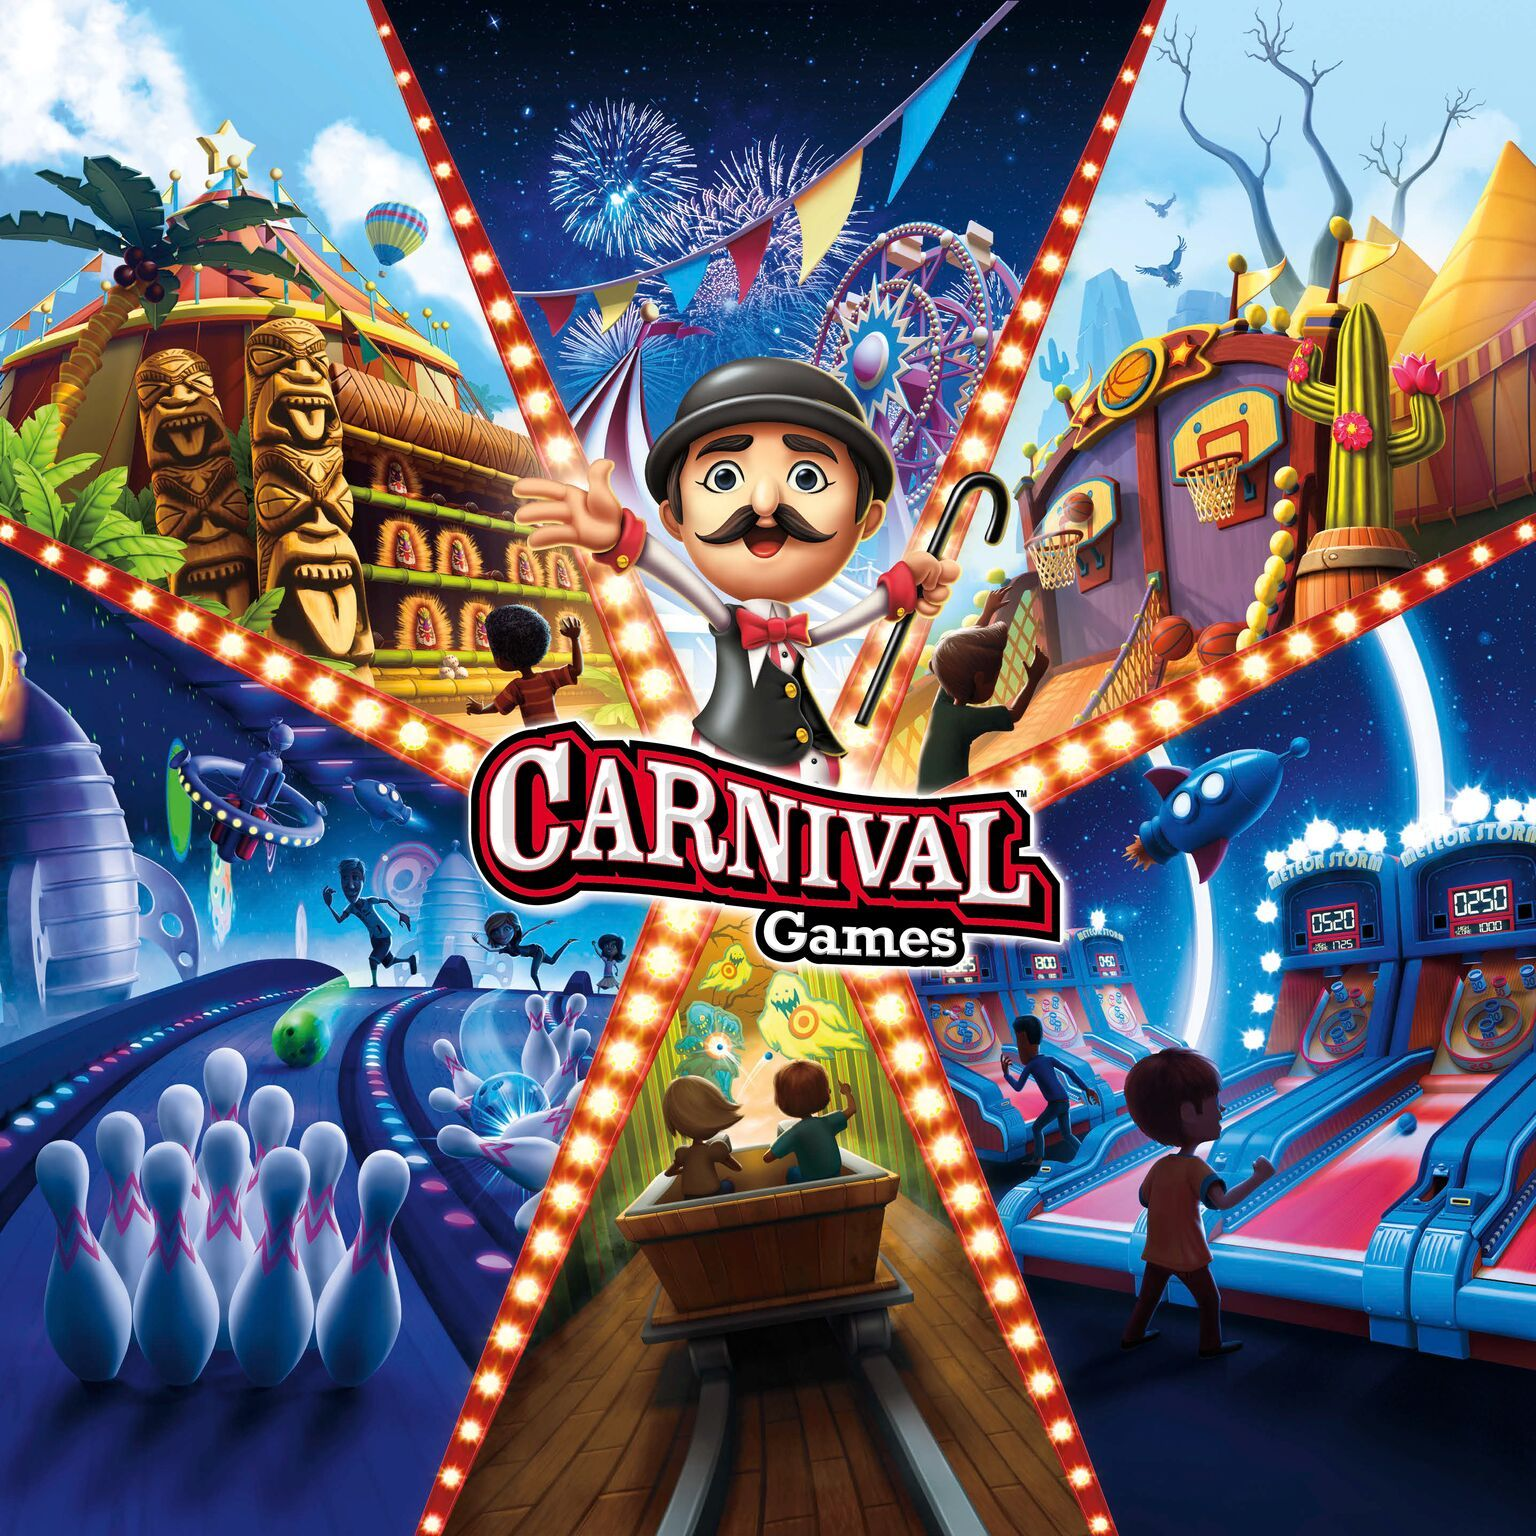 Win Carnival Games On Nintendo Switch 25 Days Of Christmas 247moms Carnival Games 25 Days Of Christmas Carnival